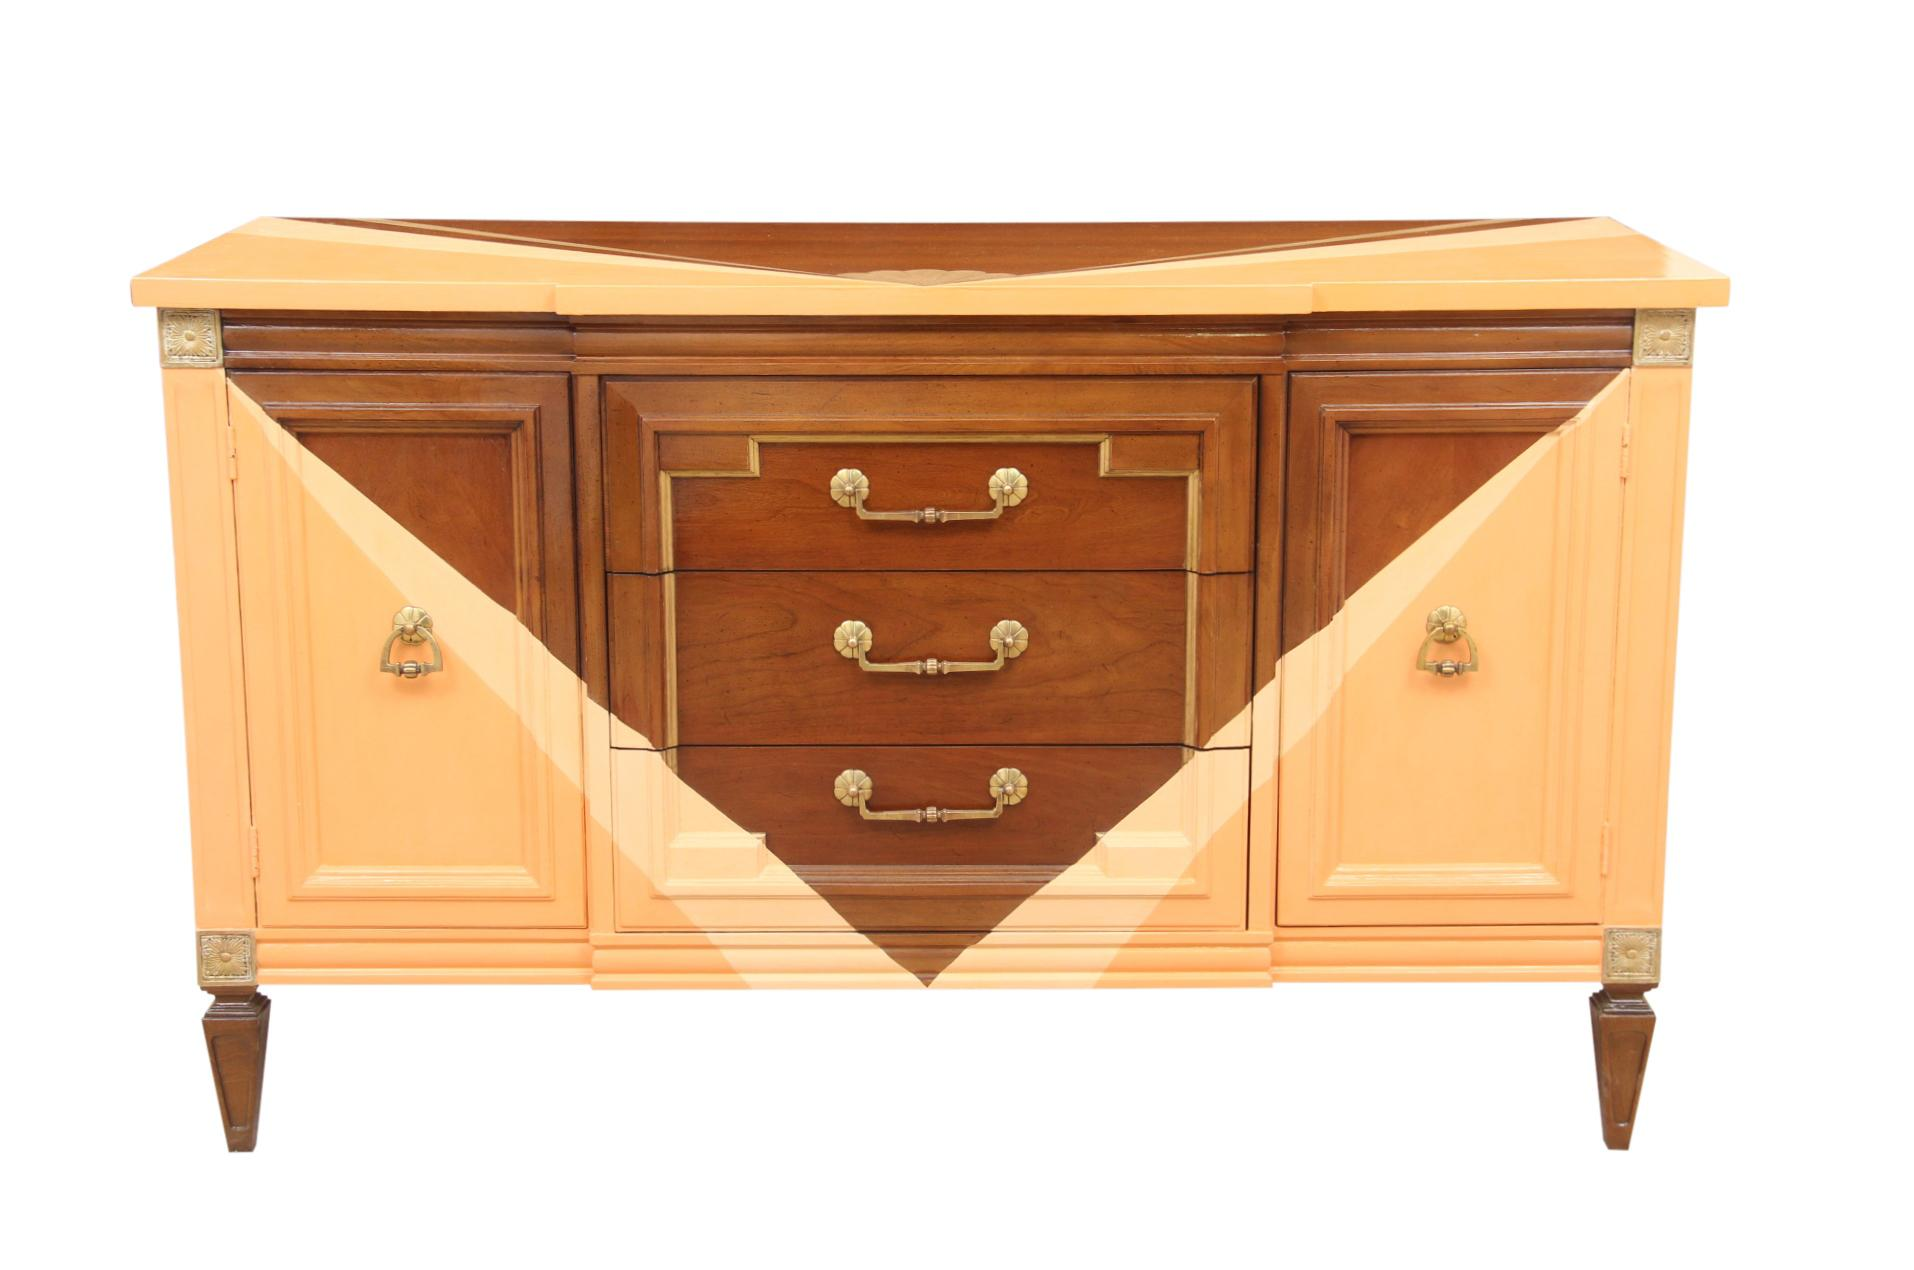 Thomasville Hand Painted Art Deco Style Credenza